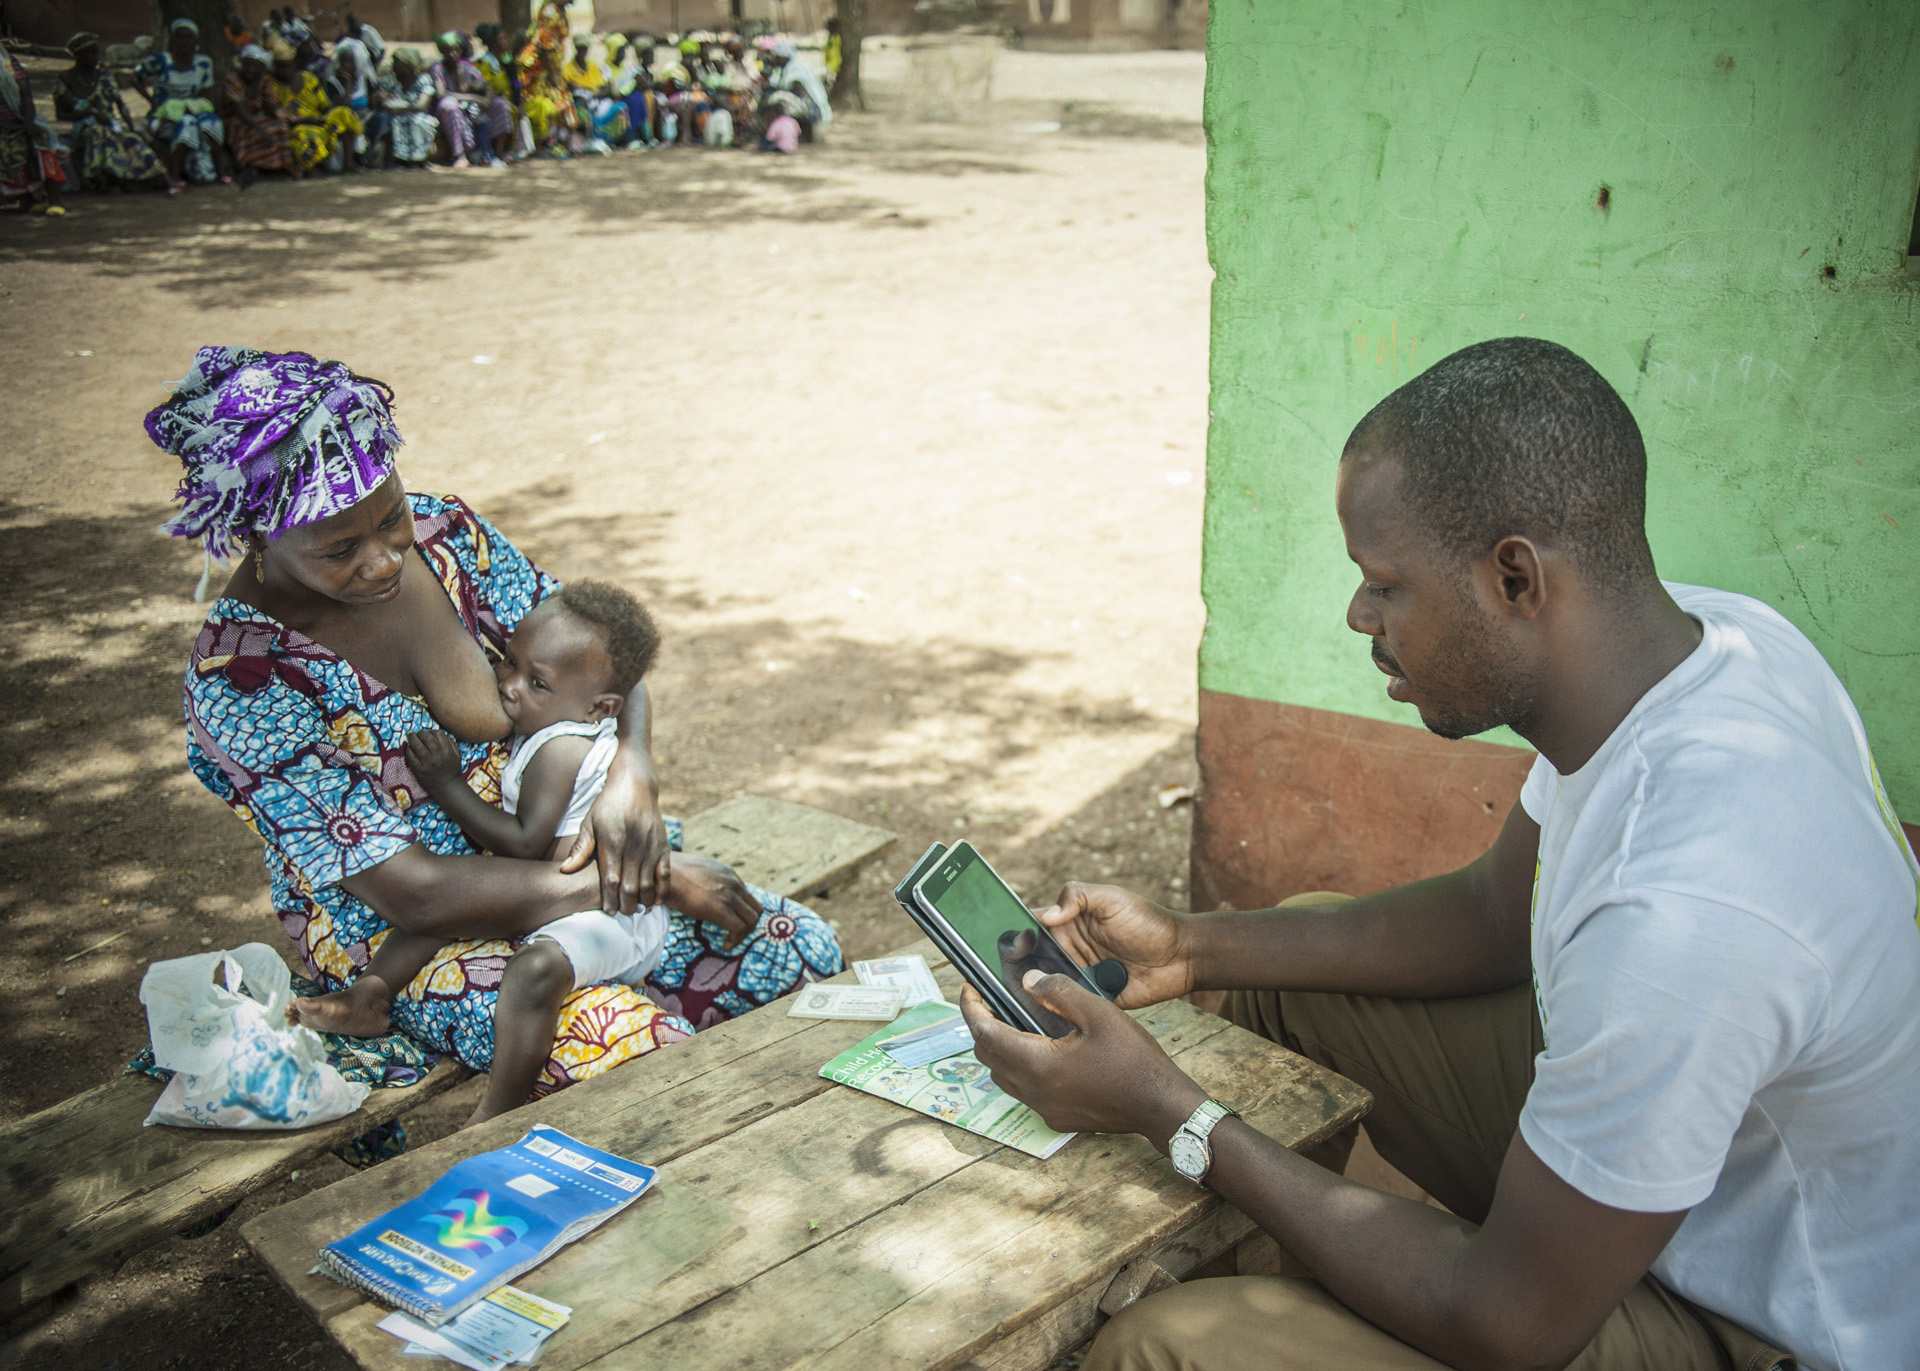 The LEAP 1000 cash transfer programme is administered by the Government of Ghana and targets households with women who are pregnant or have children under the age of 12 months.